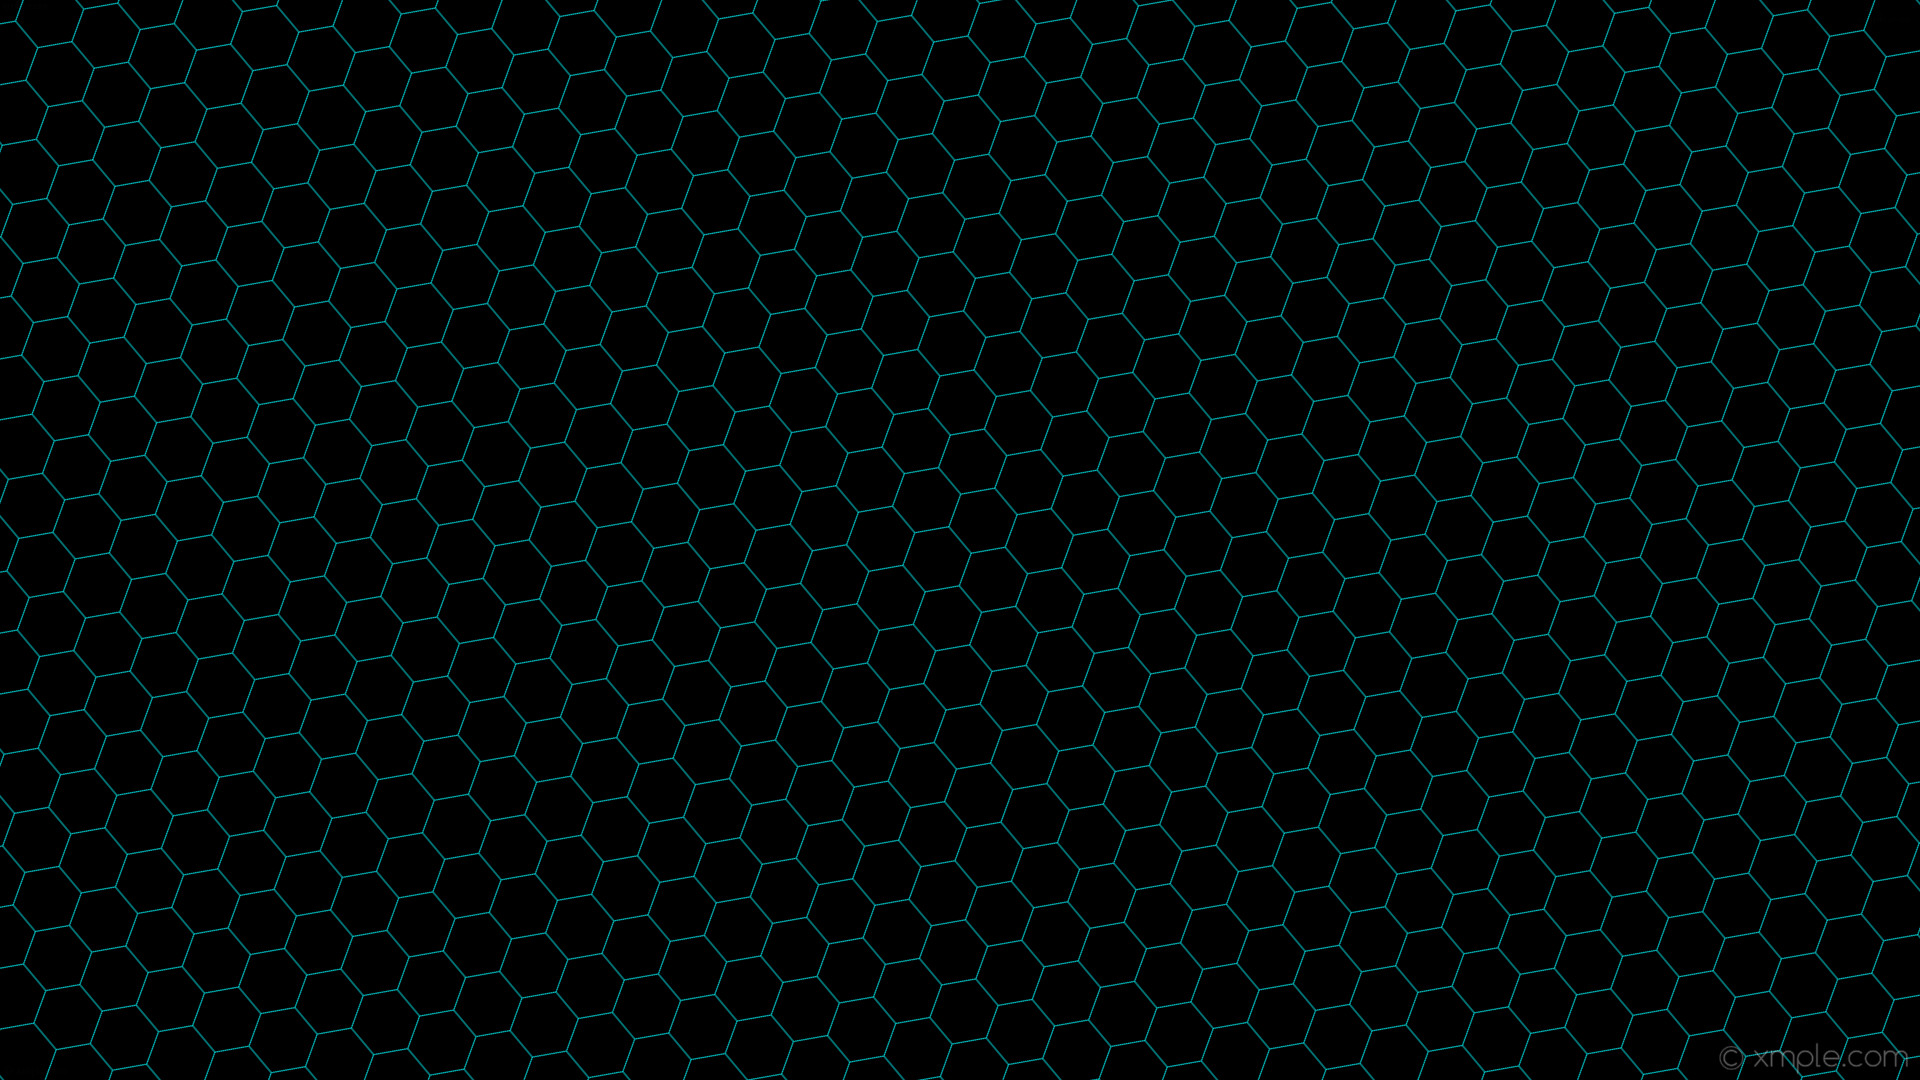 1920x1920 cool black blue android smartphone wallpaper